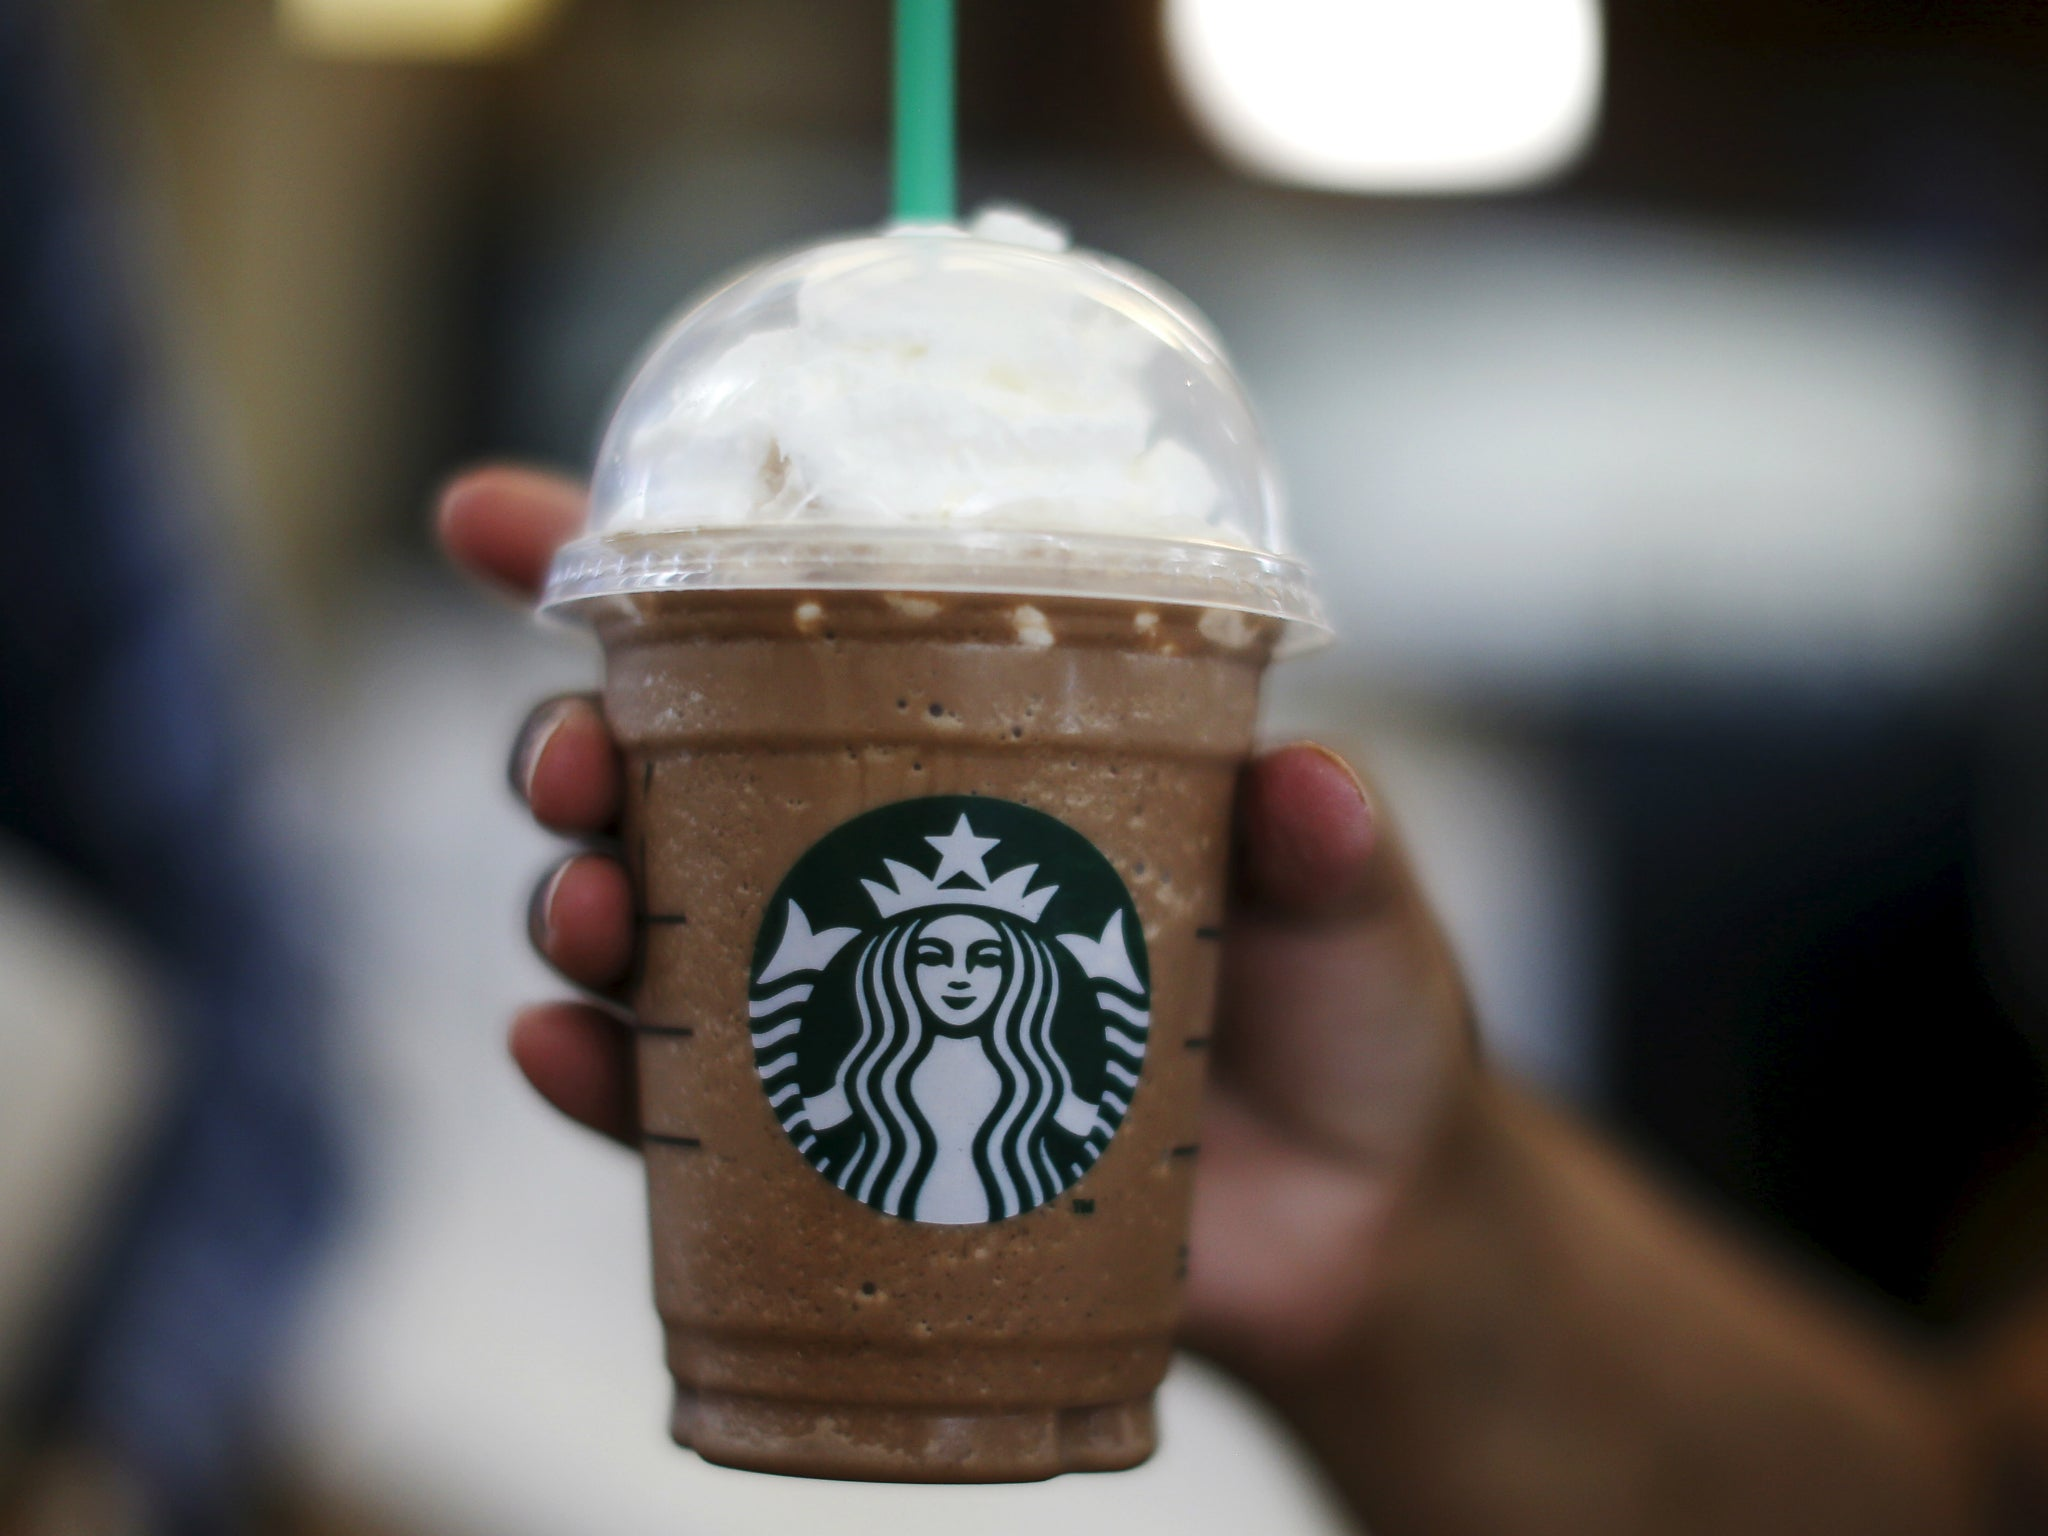 Starbucks will stop using plastic straws by 2020